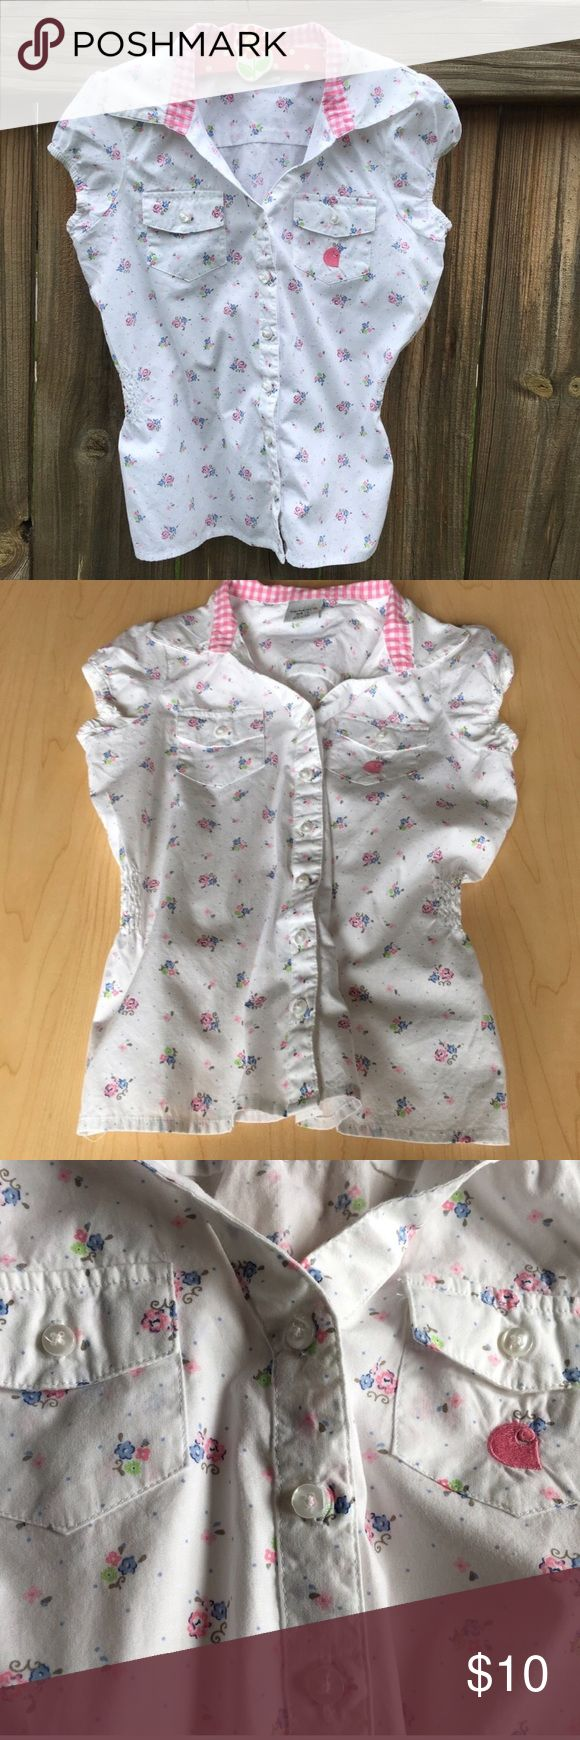 Girls Carhartt Shirt Beautiful girls Carhartt button down short sleeve shirt size 7.  Pretty flowered design with vibrant colors.  Back has a gathered bottom.  In EXCELLENT condition!  From a pet and smoke free home! Carhartt Shirts & Tops